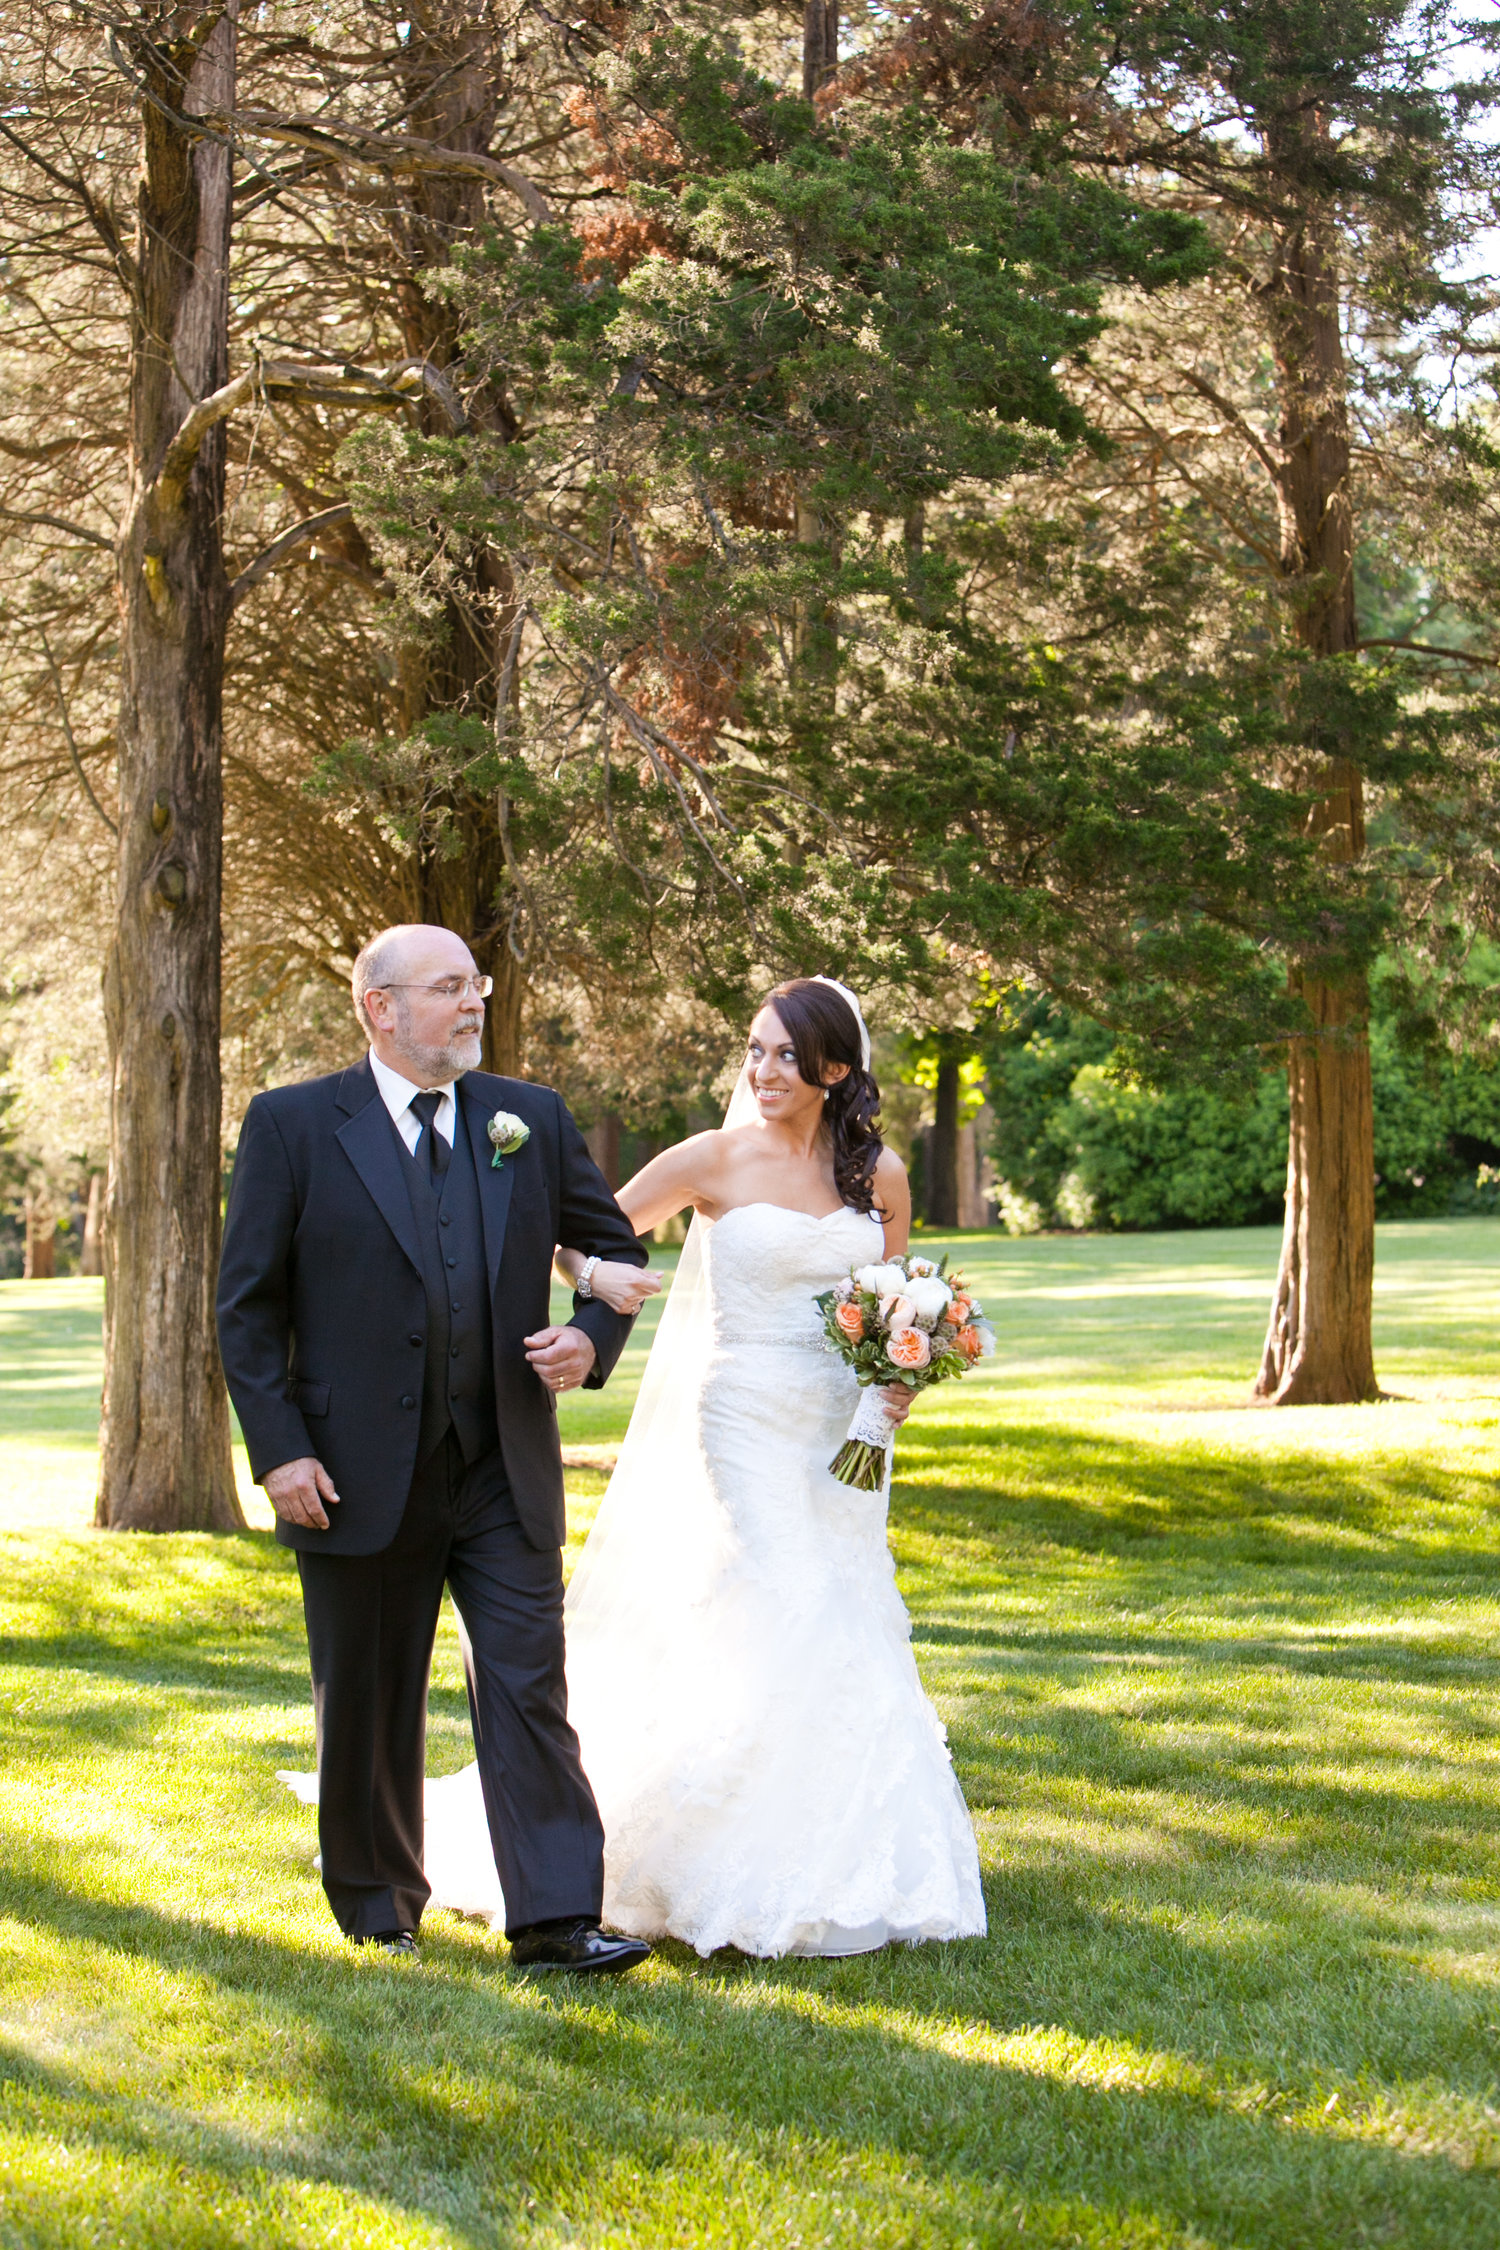 Modern Song Inspiration For Your Walk Down The Aisle